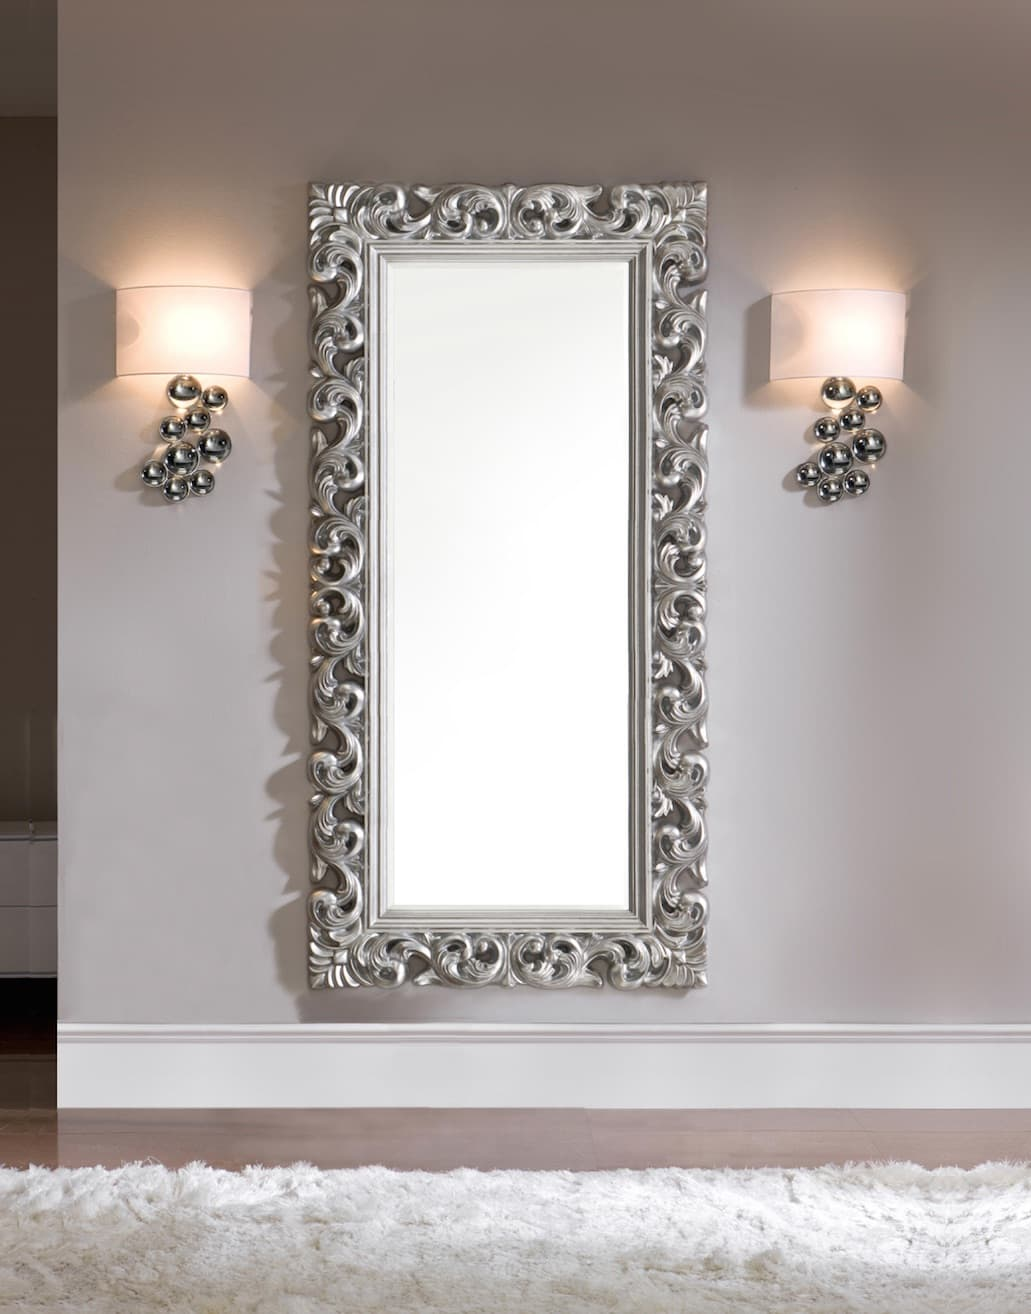 Luminaire et d co miroir roma 1 grand miroir antique for Grand miroir salon